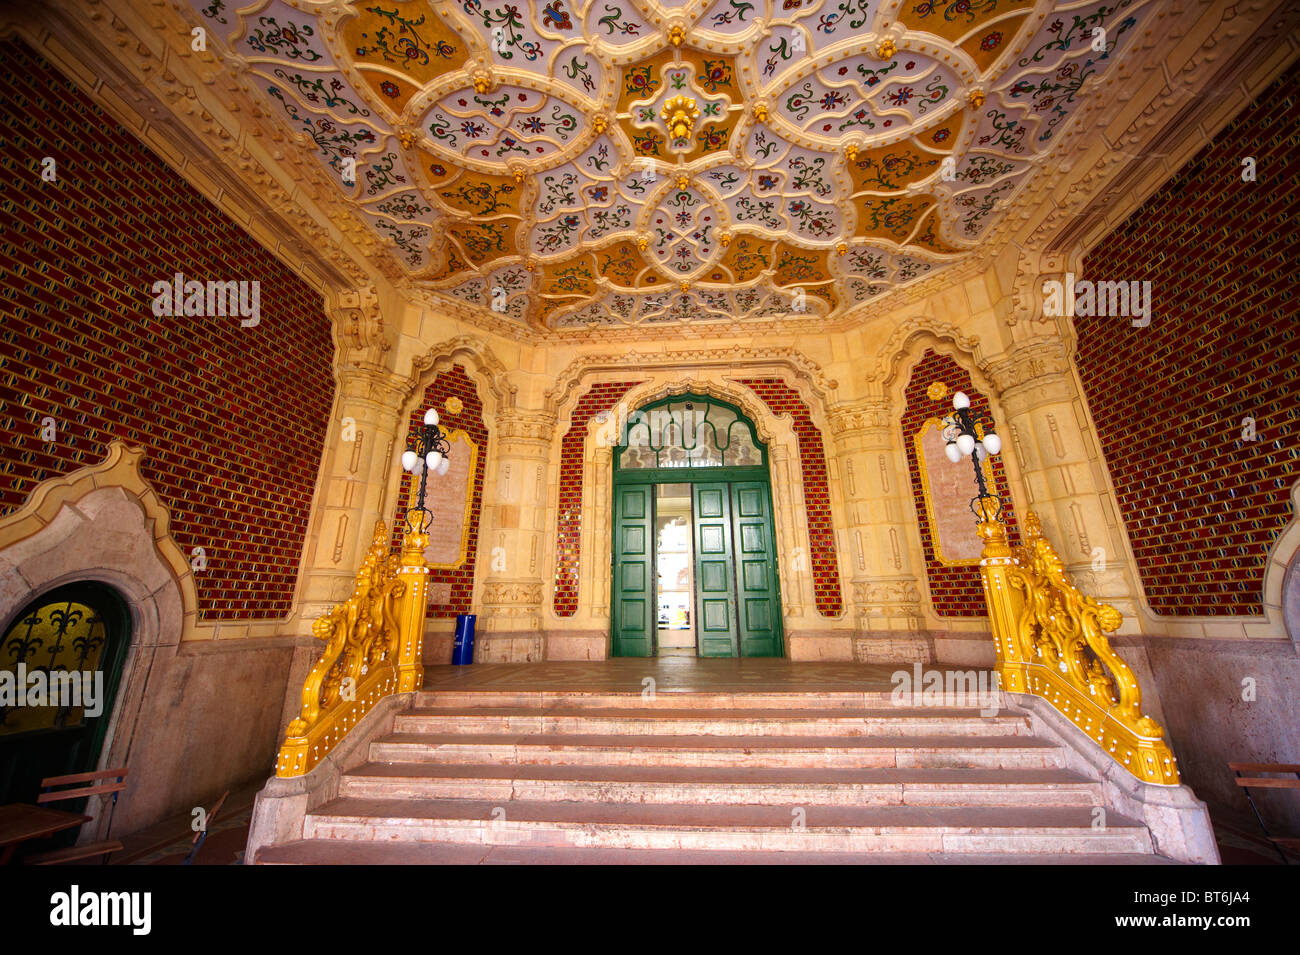 The entrance hall of art nouveau museum of applied arts with the entrance hall of art nouveau museum of applied arts with zolnay tiles ceramic hand rails budapest hungary dailygadgetfo Gallery